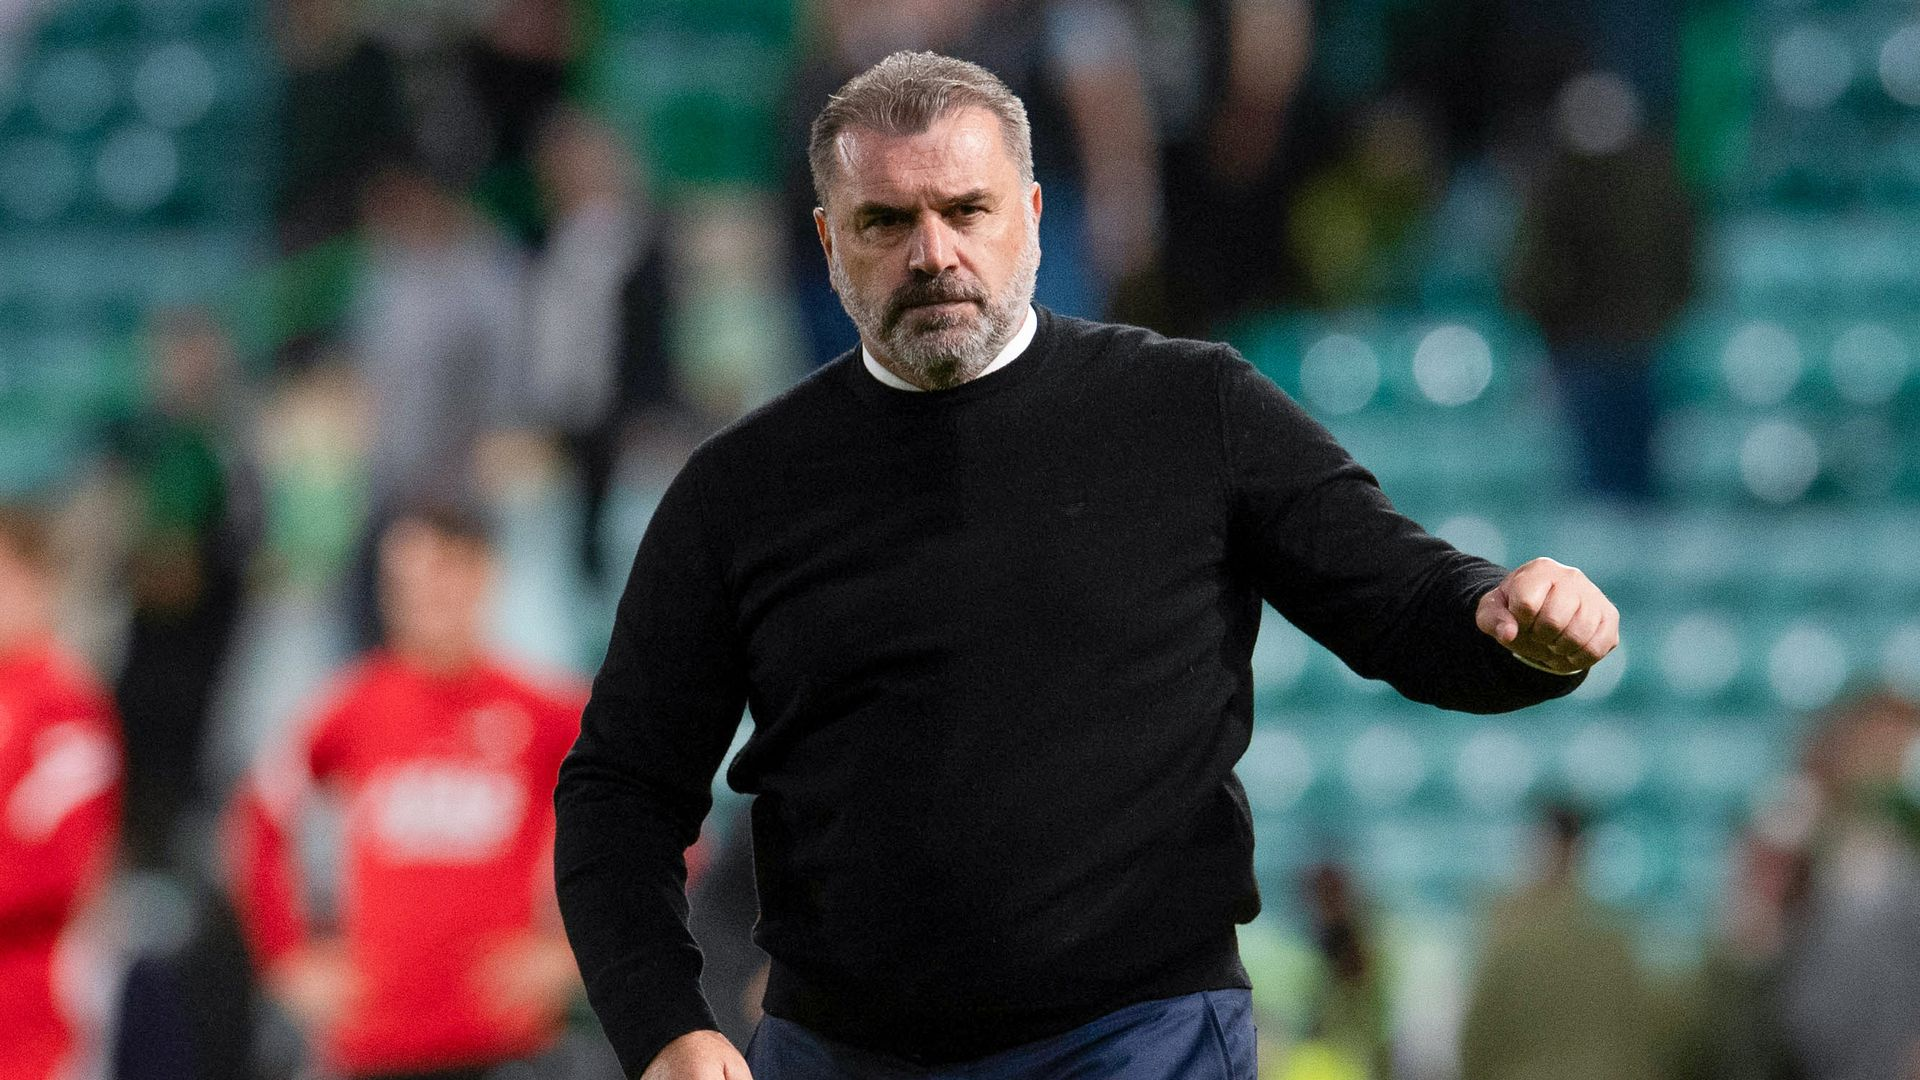 Postecoglou aiming for 'less chaotic' January transfer window